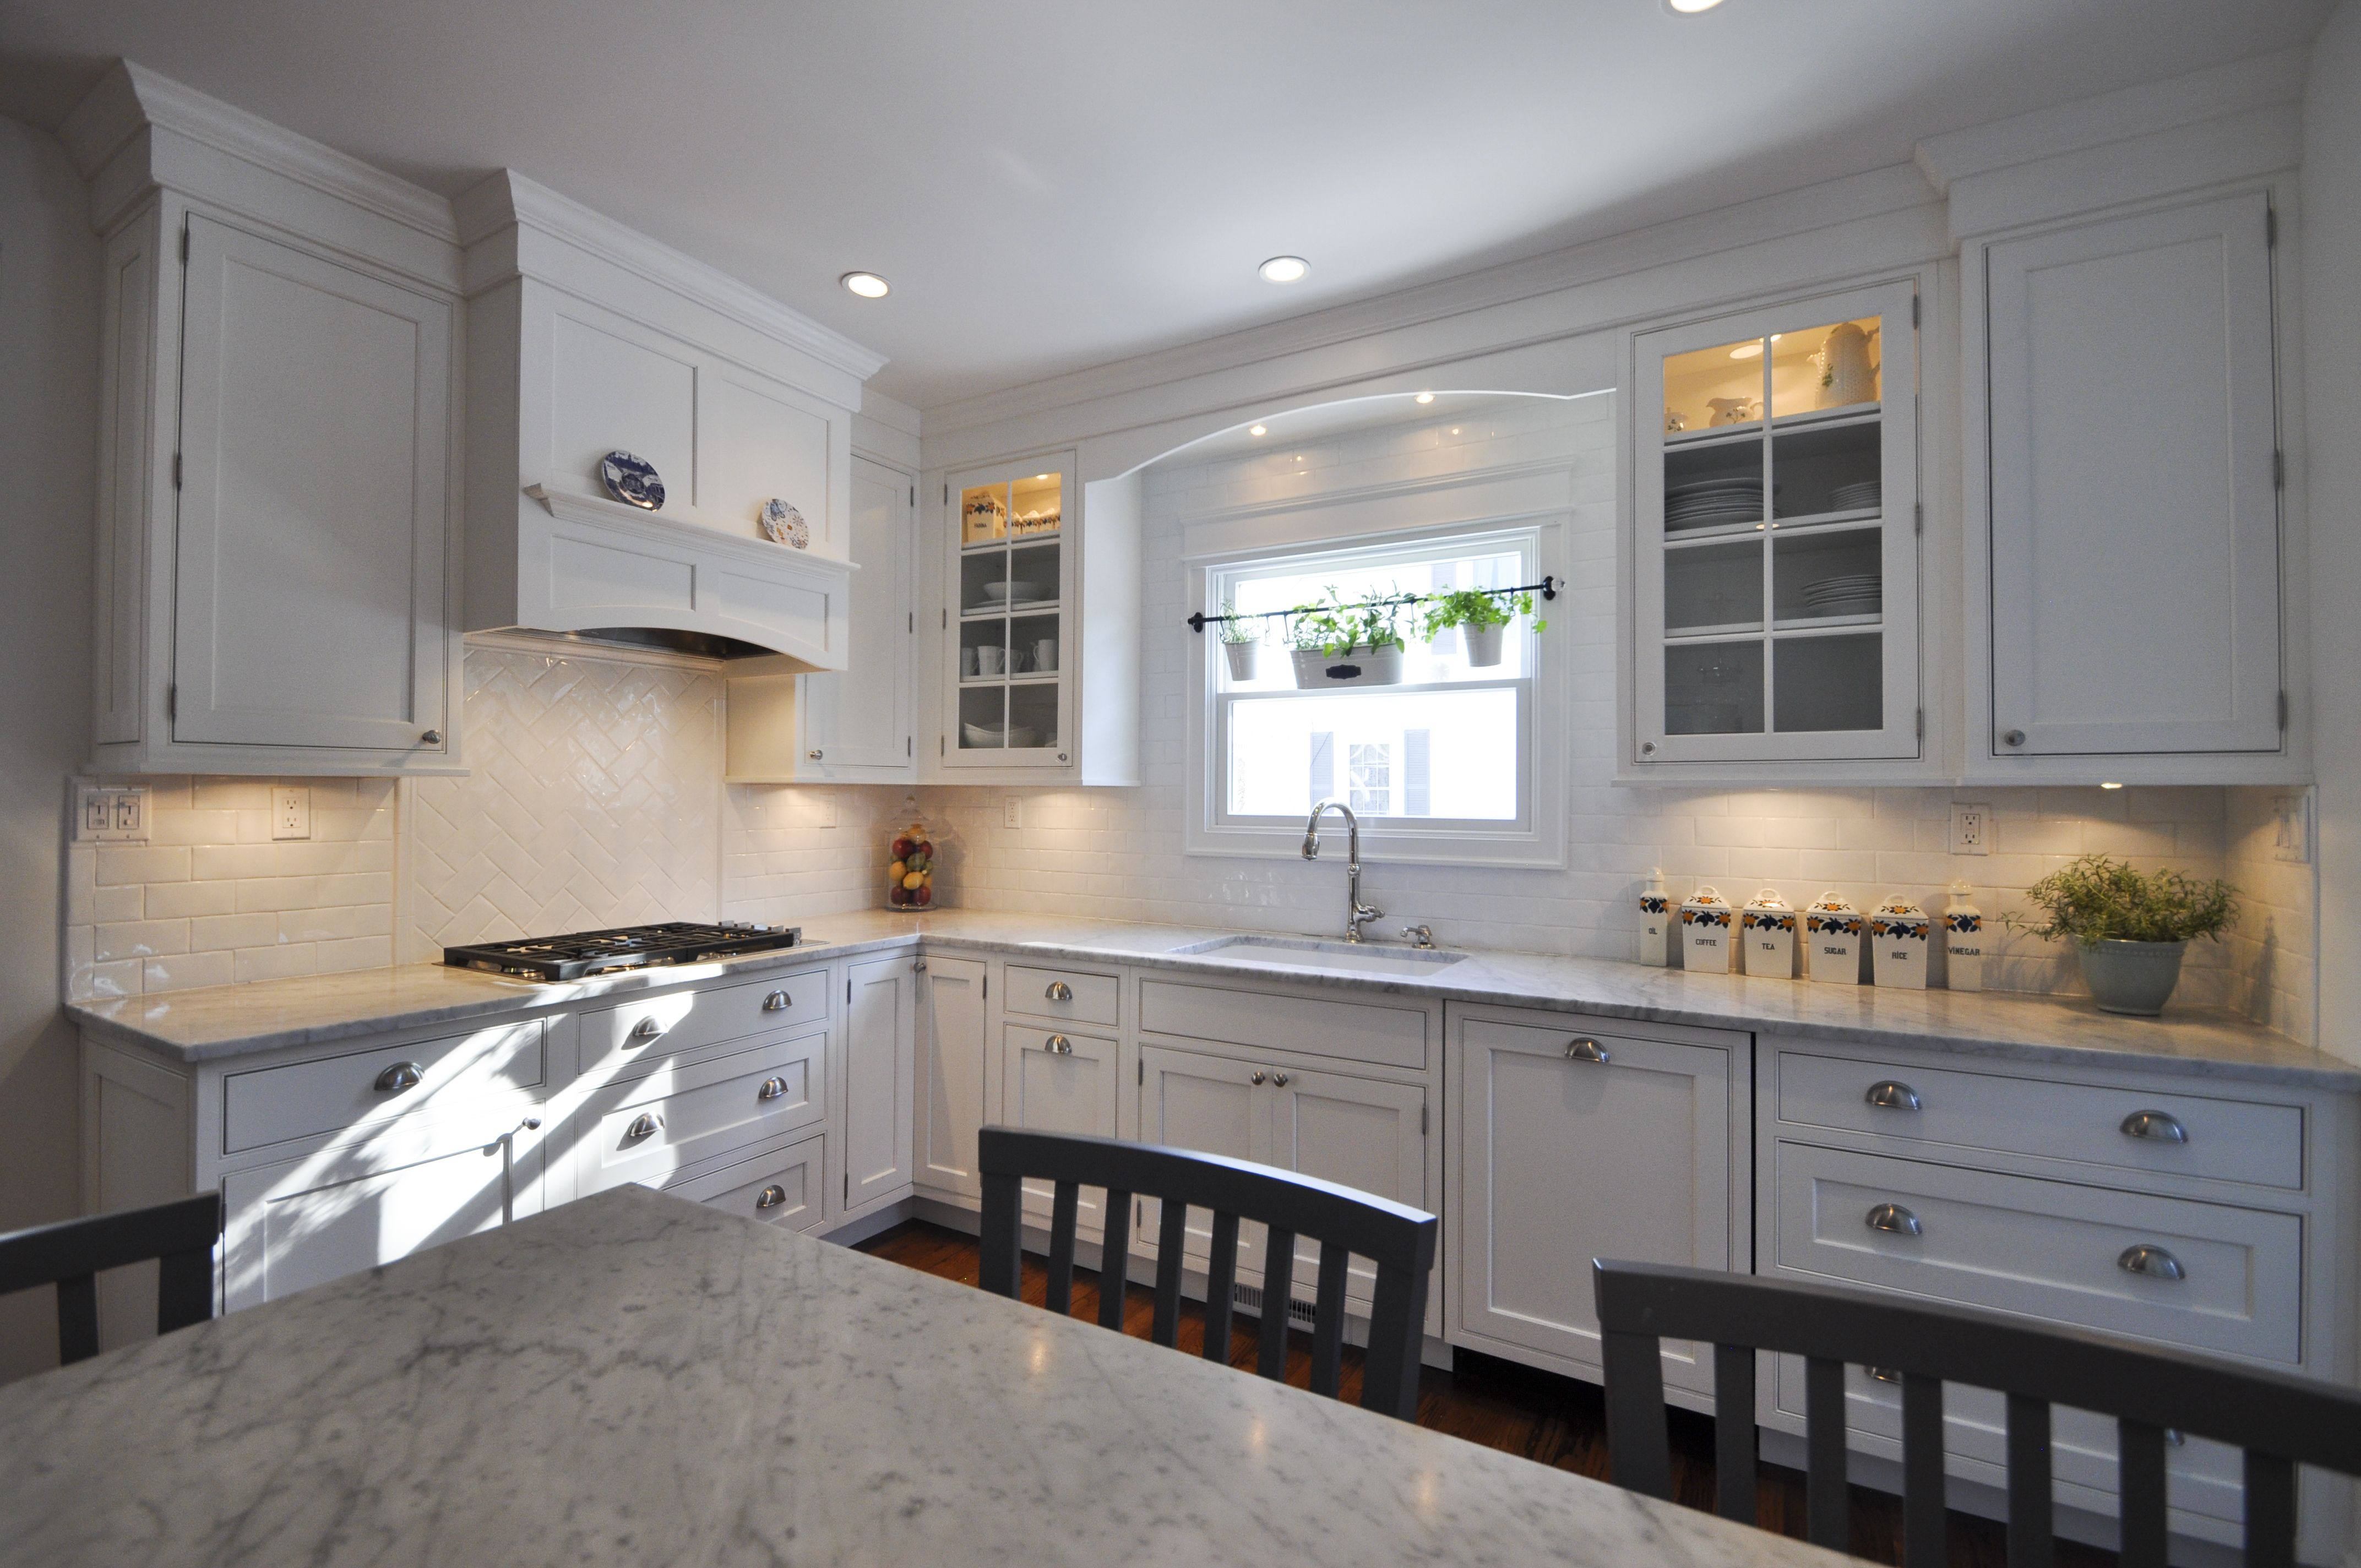 Simple Shaker Kitchen With Marble Counter Tops In Cabinet And Under Cabinet Lighting 3x6 Sub Way Tile Bac Kitchen Construction Kitchen Remodel Kitchen Design